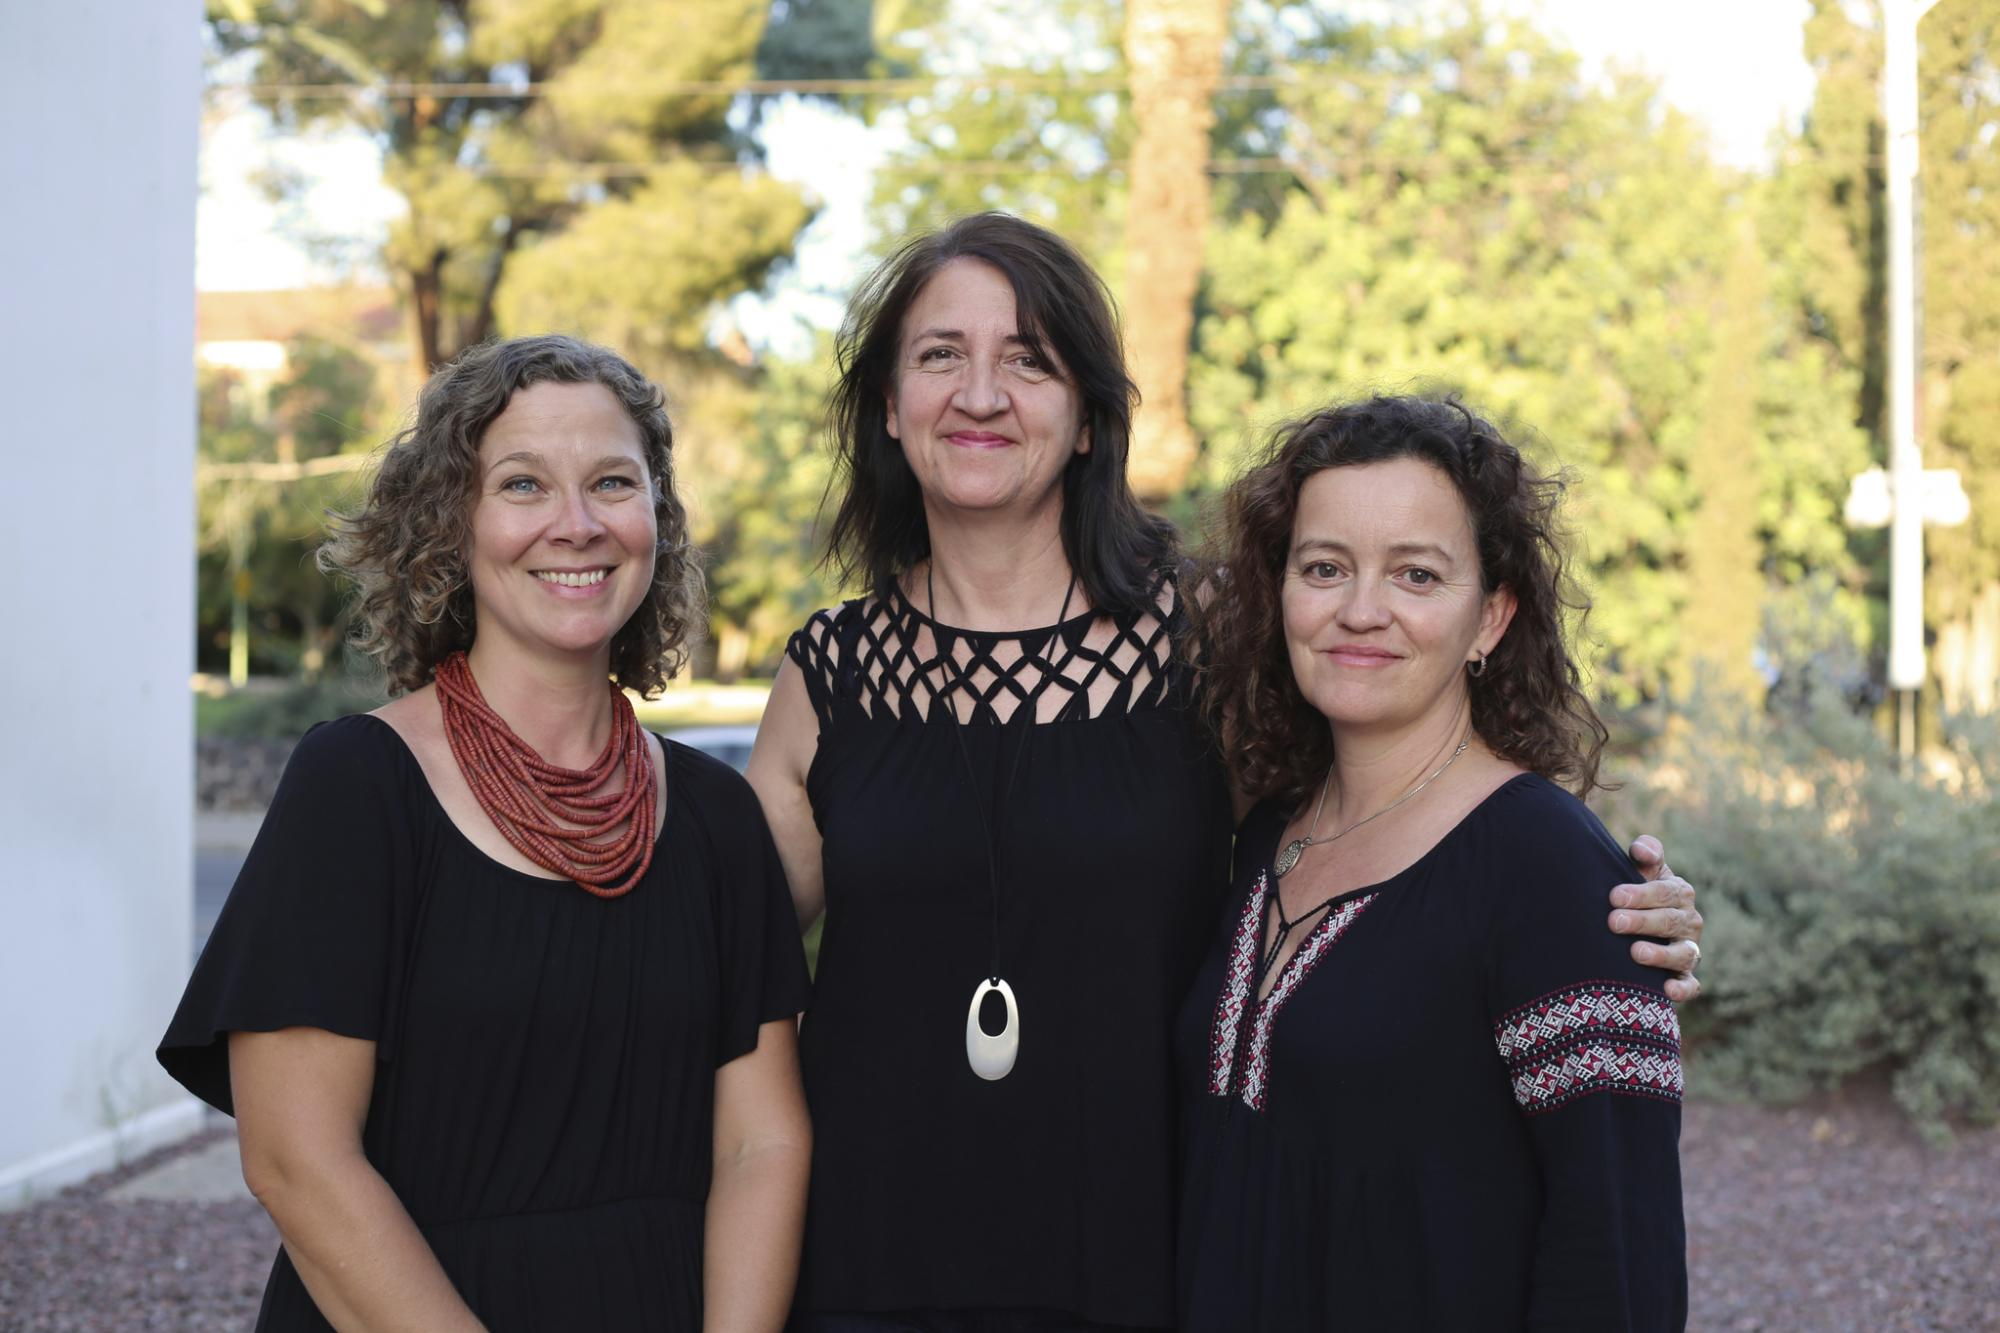 The Center for Educational Resources in Culture, Language and Literacy's core team:  Co-Directors Chantelle Warner and Beatrice Dupuy, and Associate Director Kate Mackay